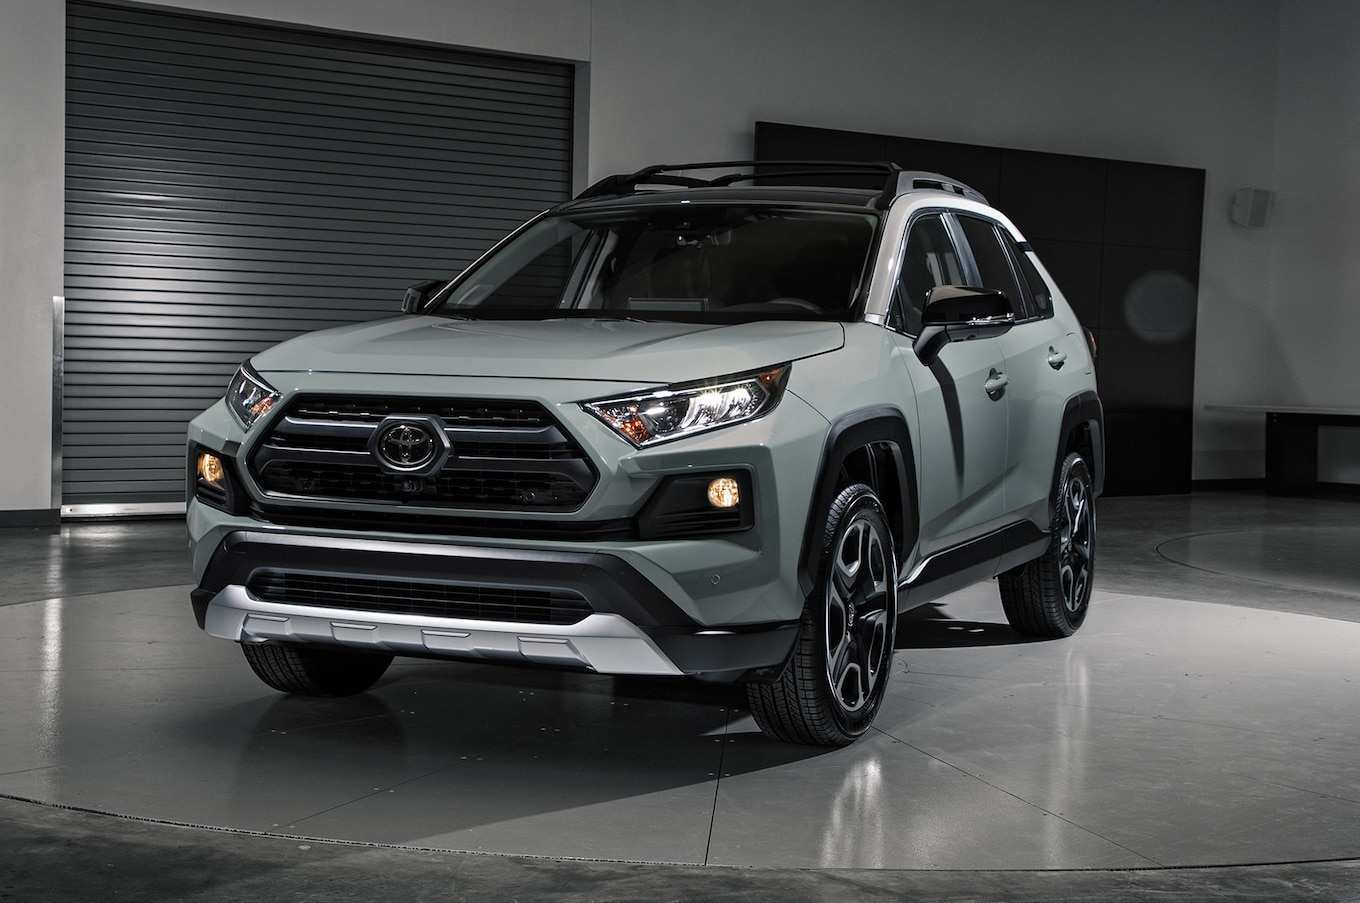 98 The 2019 Toyota Rav4 Price Model with 2019 Toyota Rav4 Price